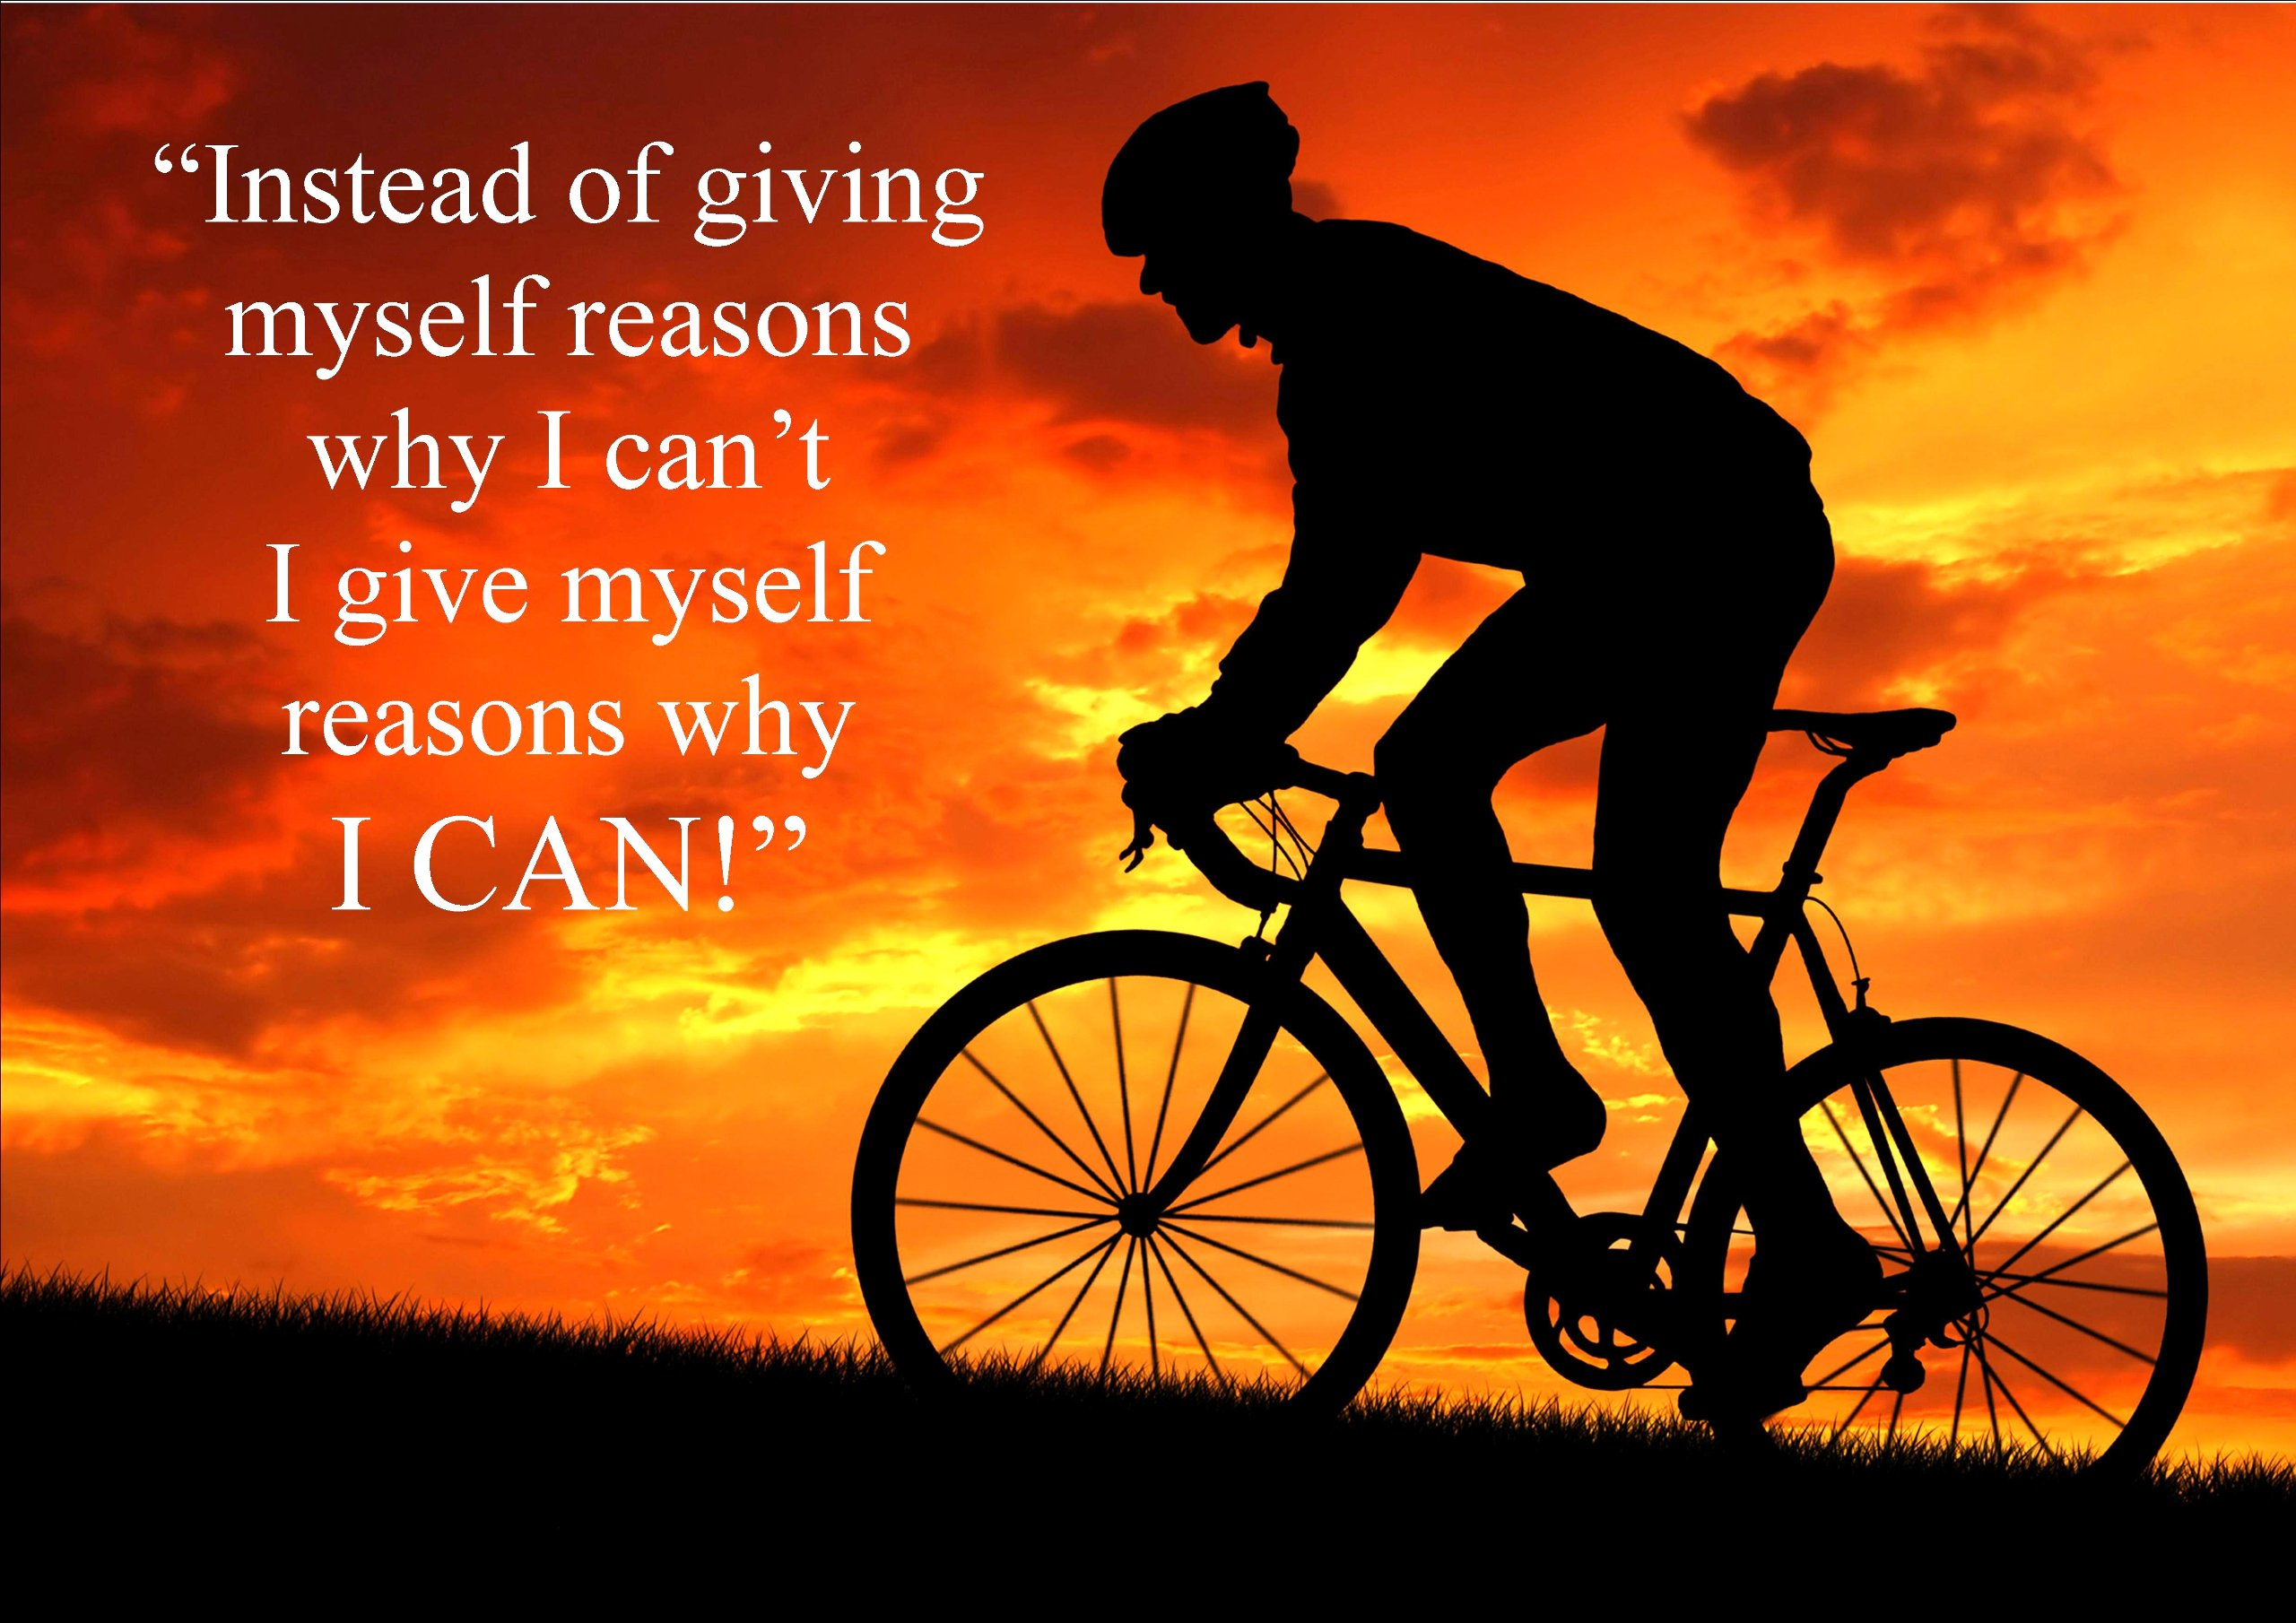 Large (A2 24inch x 16 inch)Inspirational Motivational Quote Sign Poster Print Picture(CYCLING B) SPORTS, BOXING, CYCLING, ATHLETICS, BODYBUILDING, TRIATHLON,BASKETBALL, FOOTBALL, RUGBY, SWIMMING, MARTIAL ARTS ETC ETC